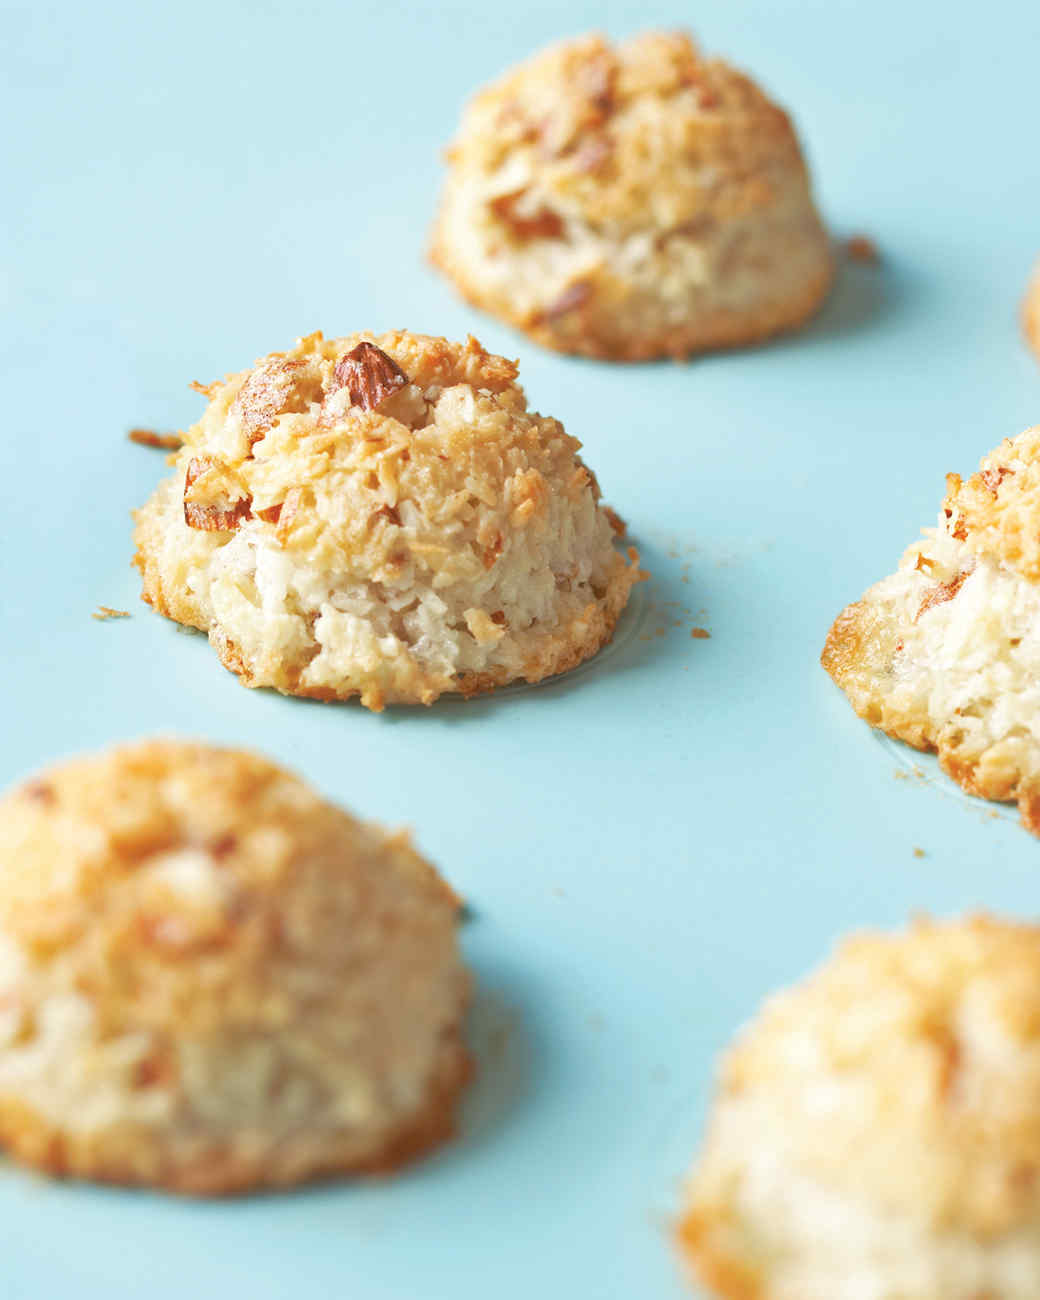 20 Passover Dessert Recipes That Might Become Your New Family Yummy Bites 123 Flavor Strawbearry Tradition Martha Stewart